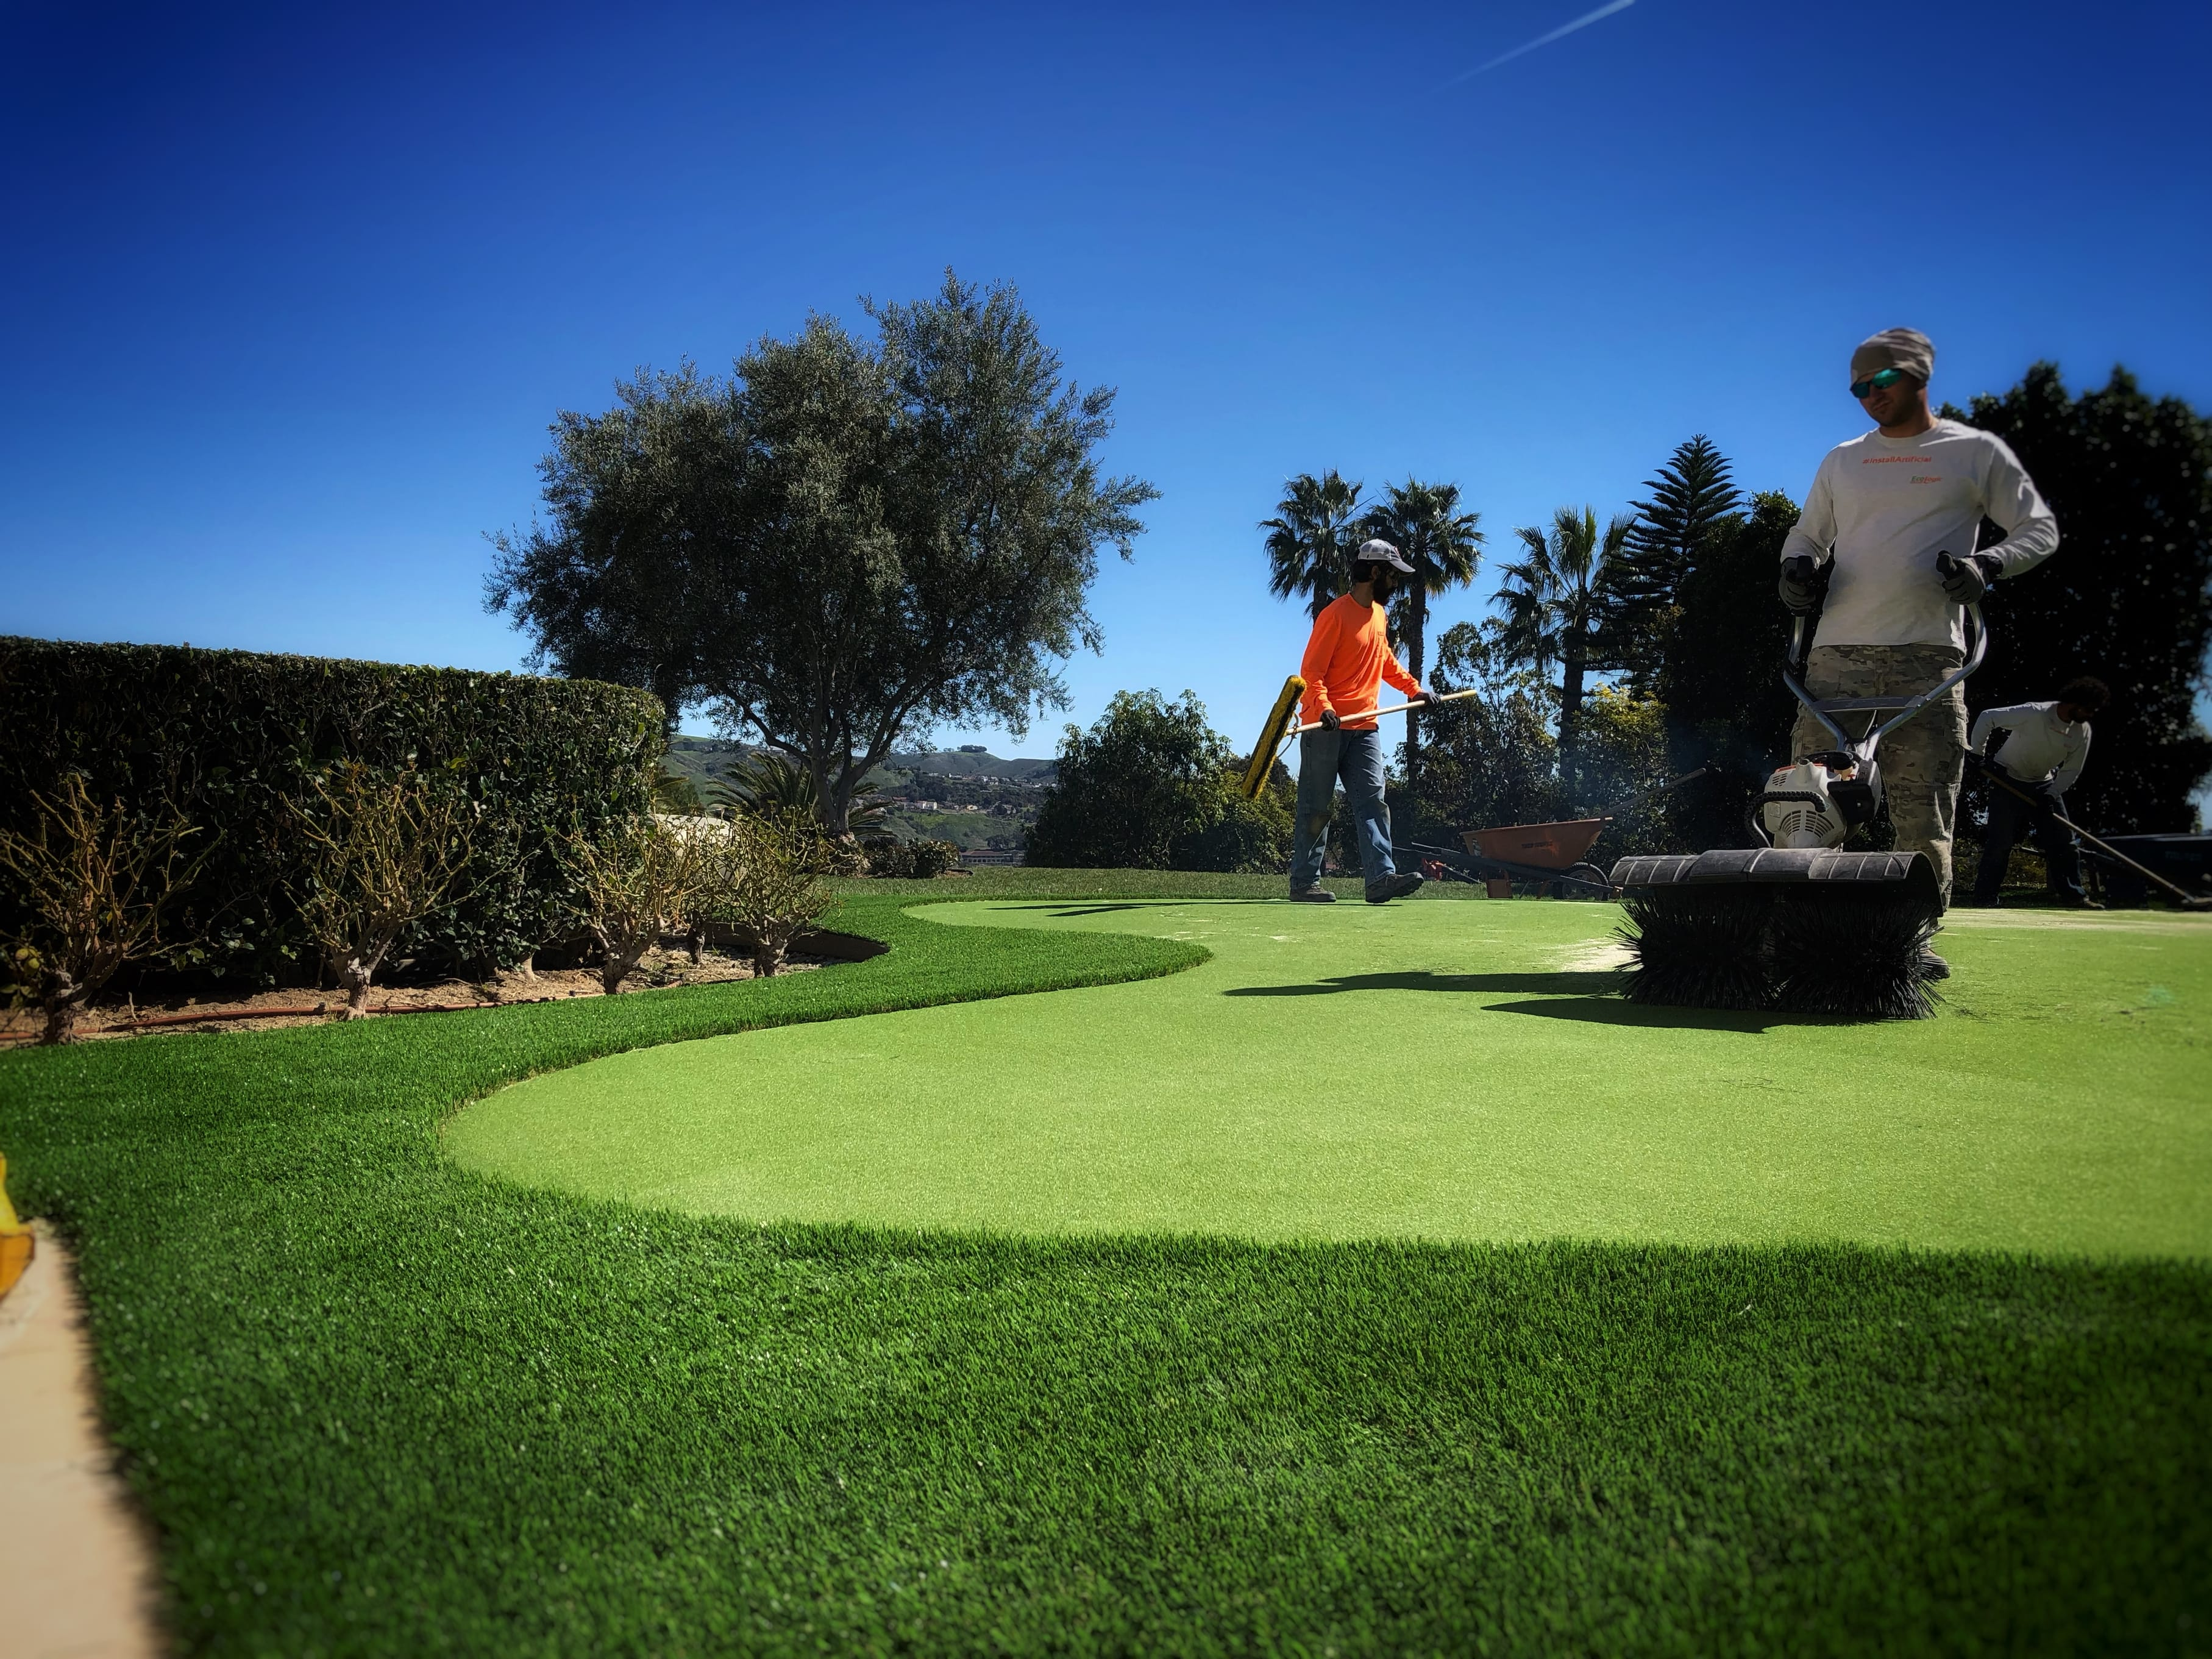 putting green installation in process